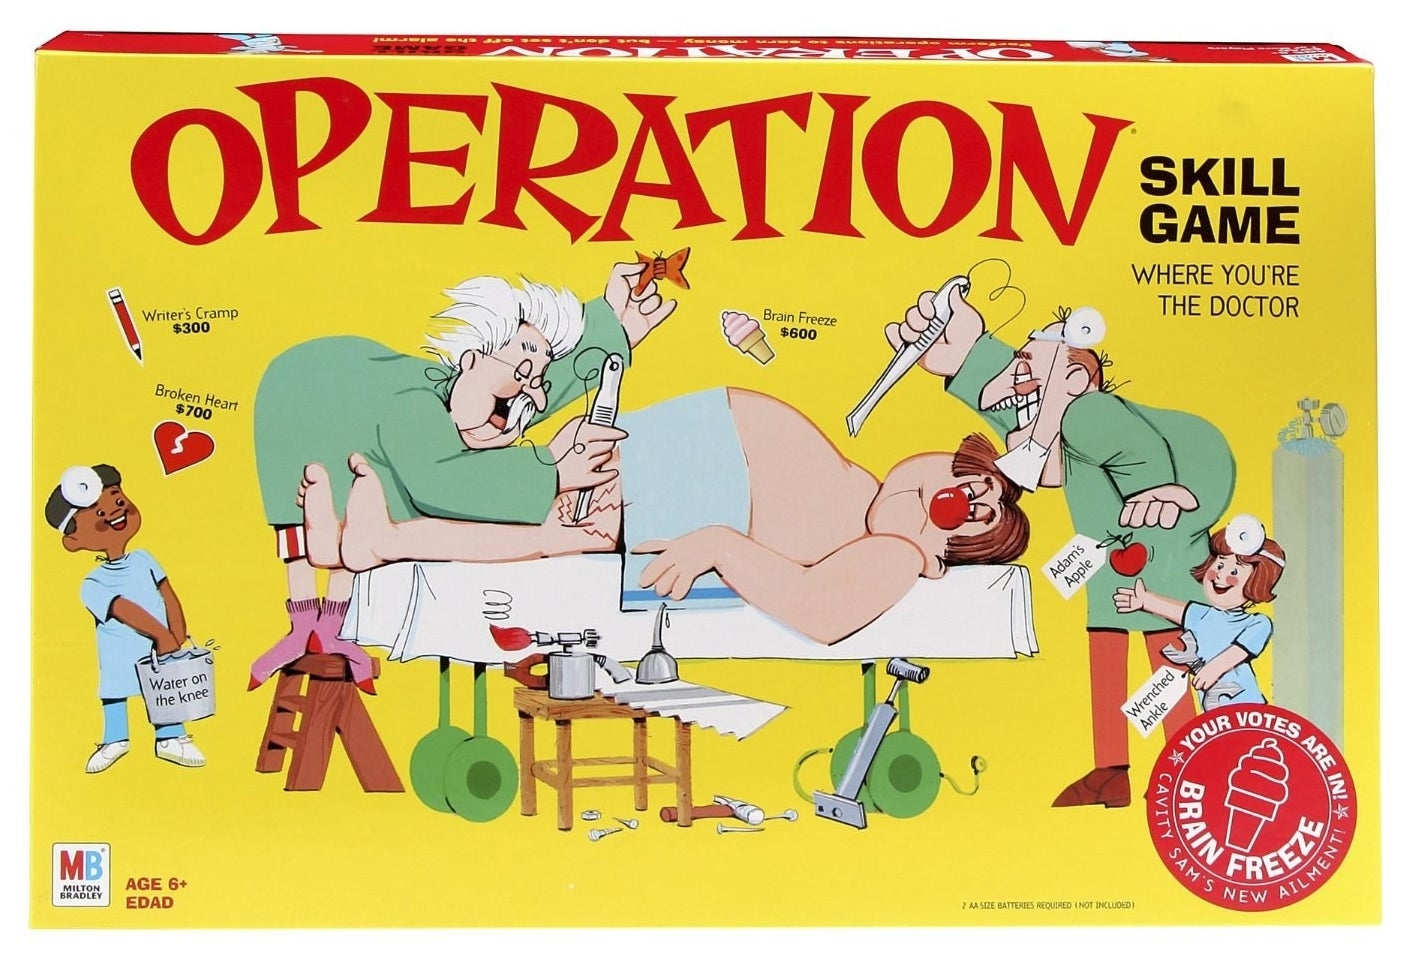 A game of Operation, which is nearly impossible to play whether sober or intoxicated.